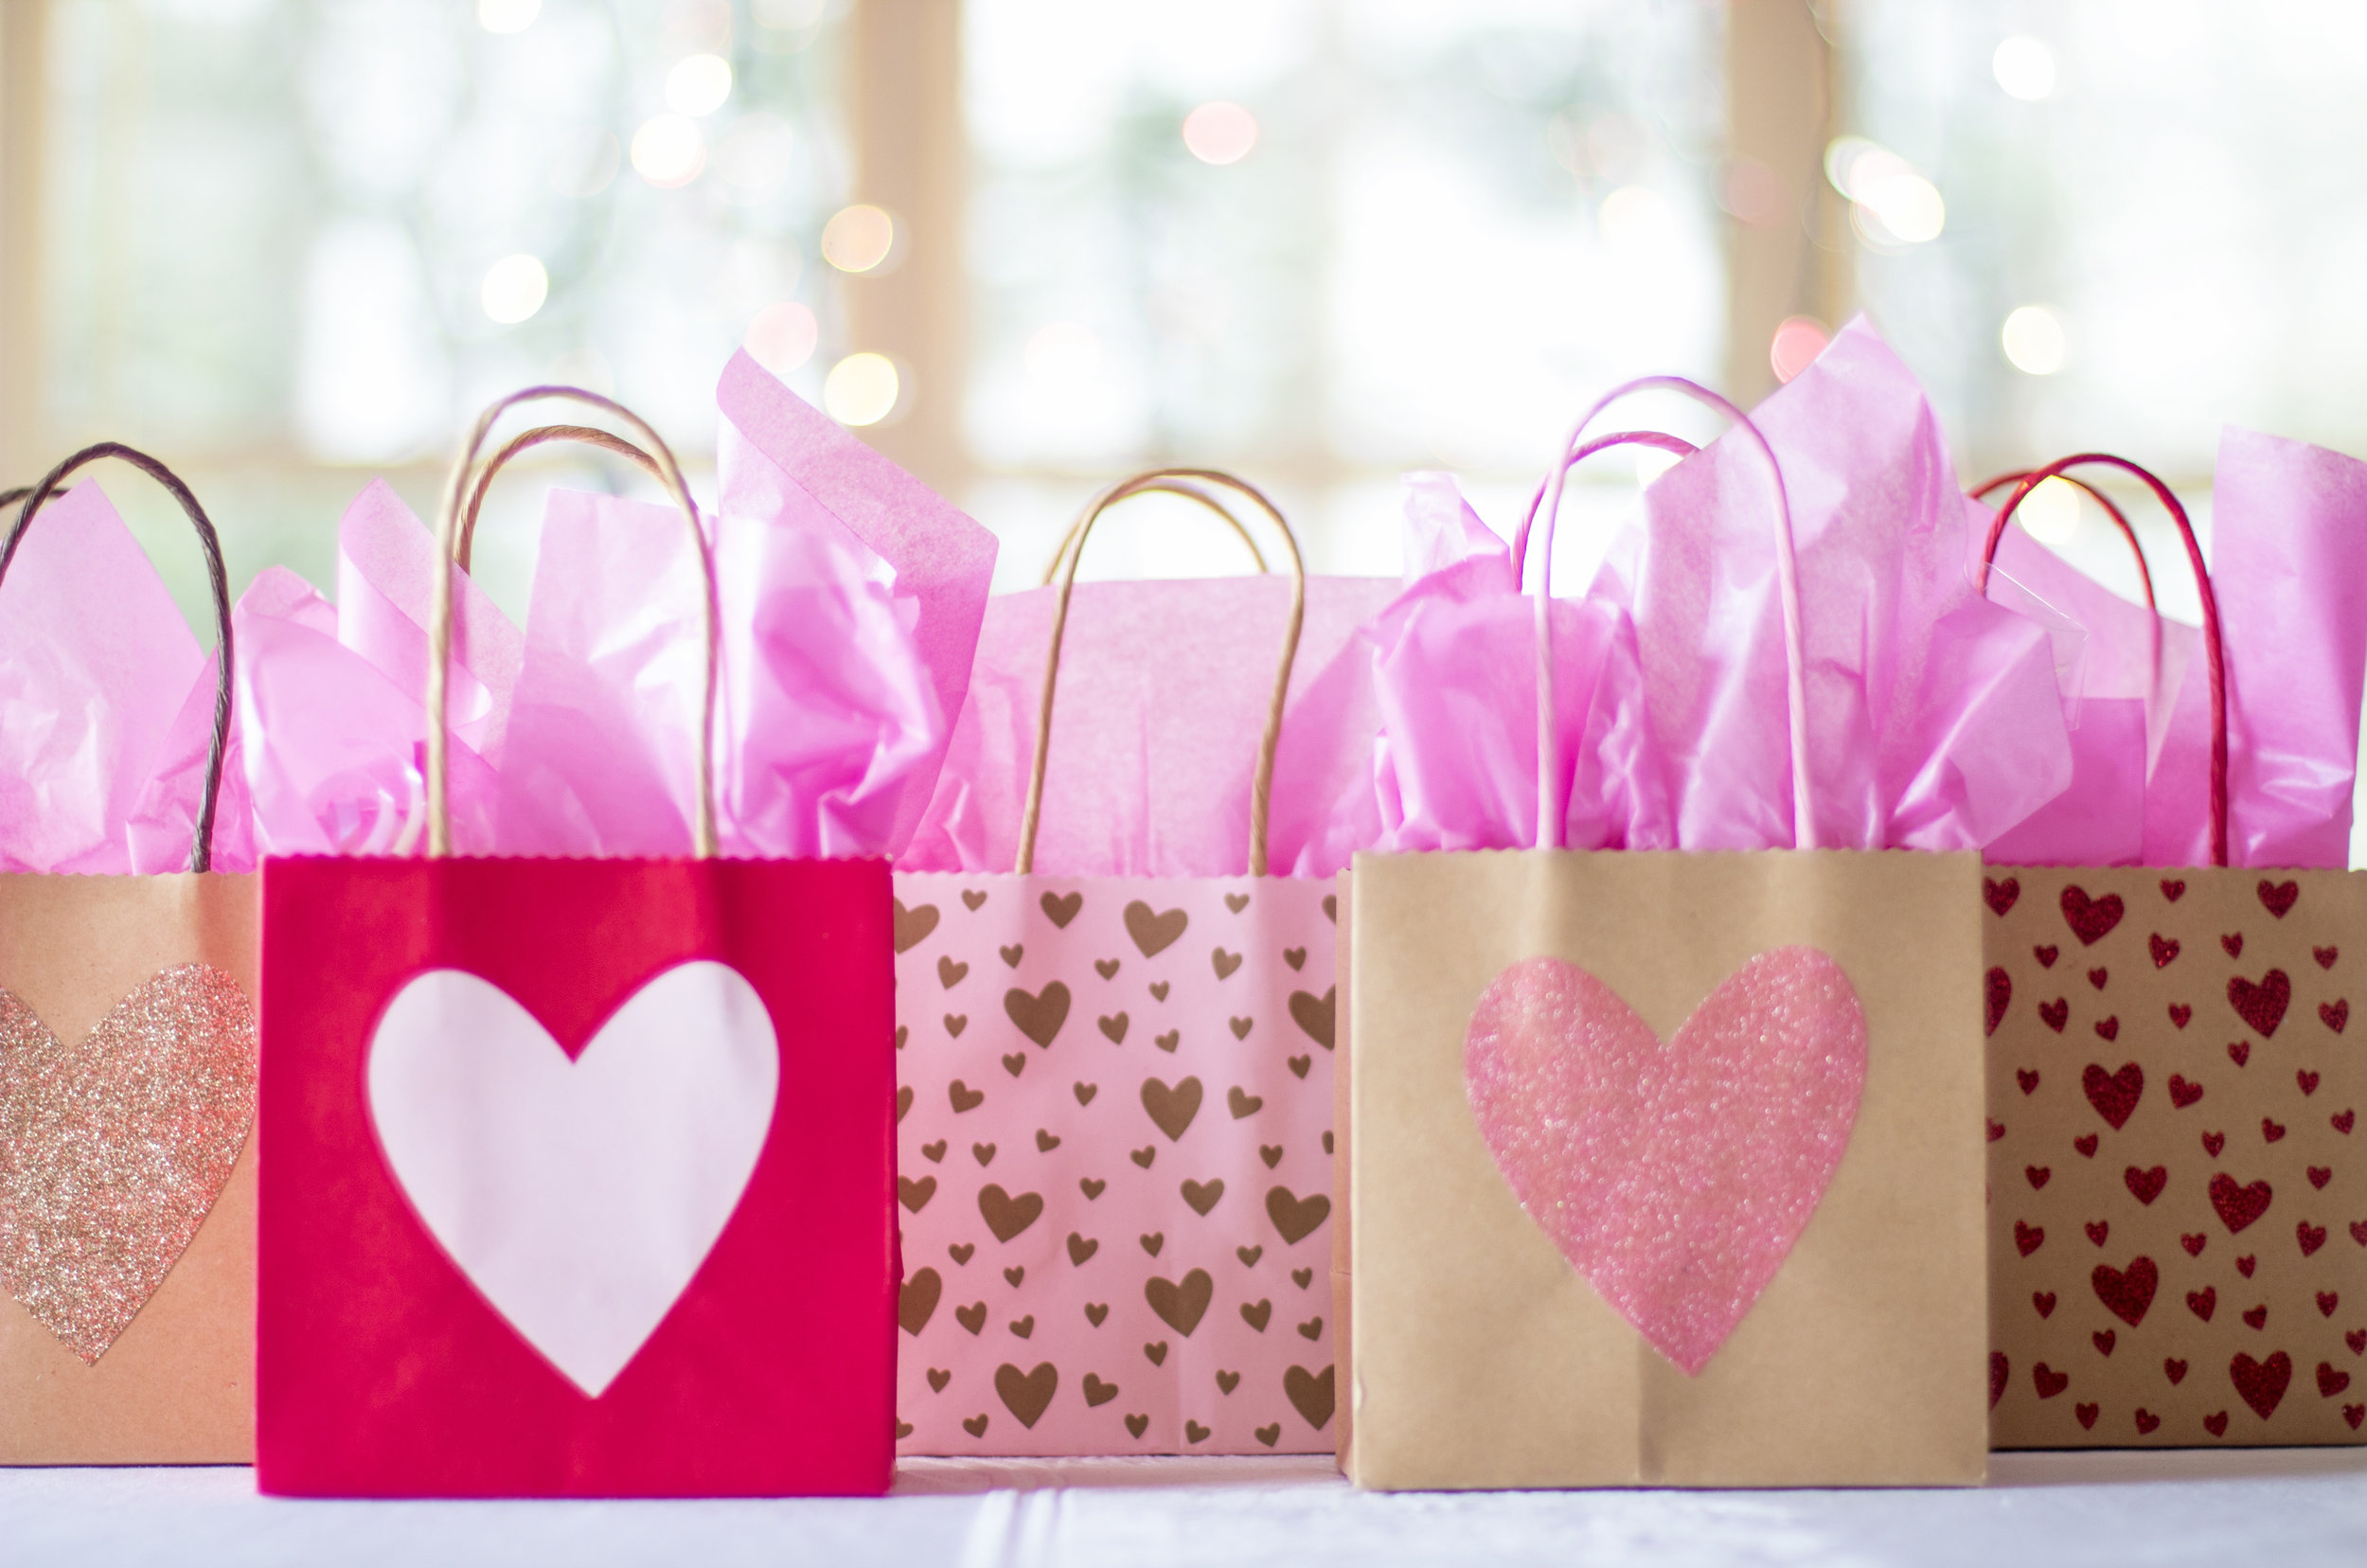 Gift Bags, Sale, Presents, Gifts, Gift, Bag, Shopping.jpg